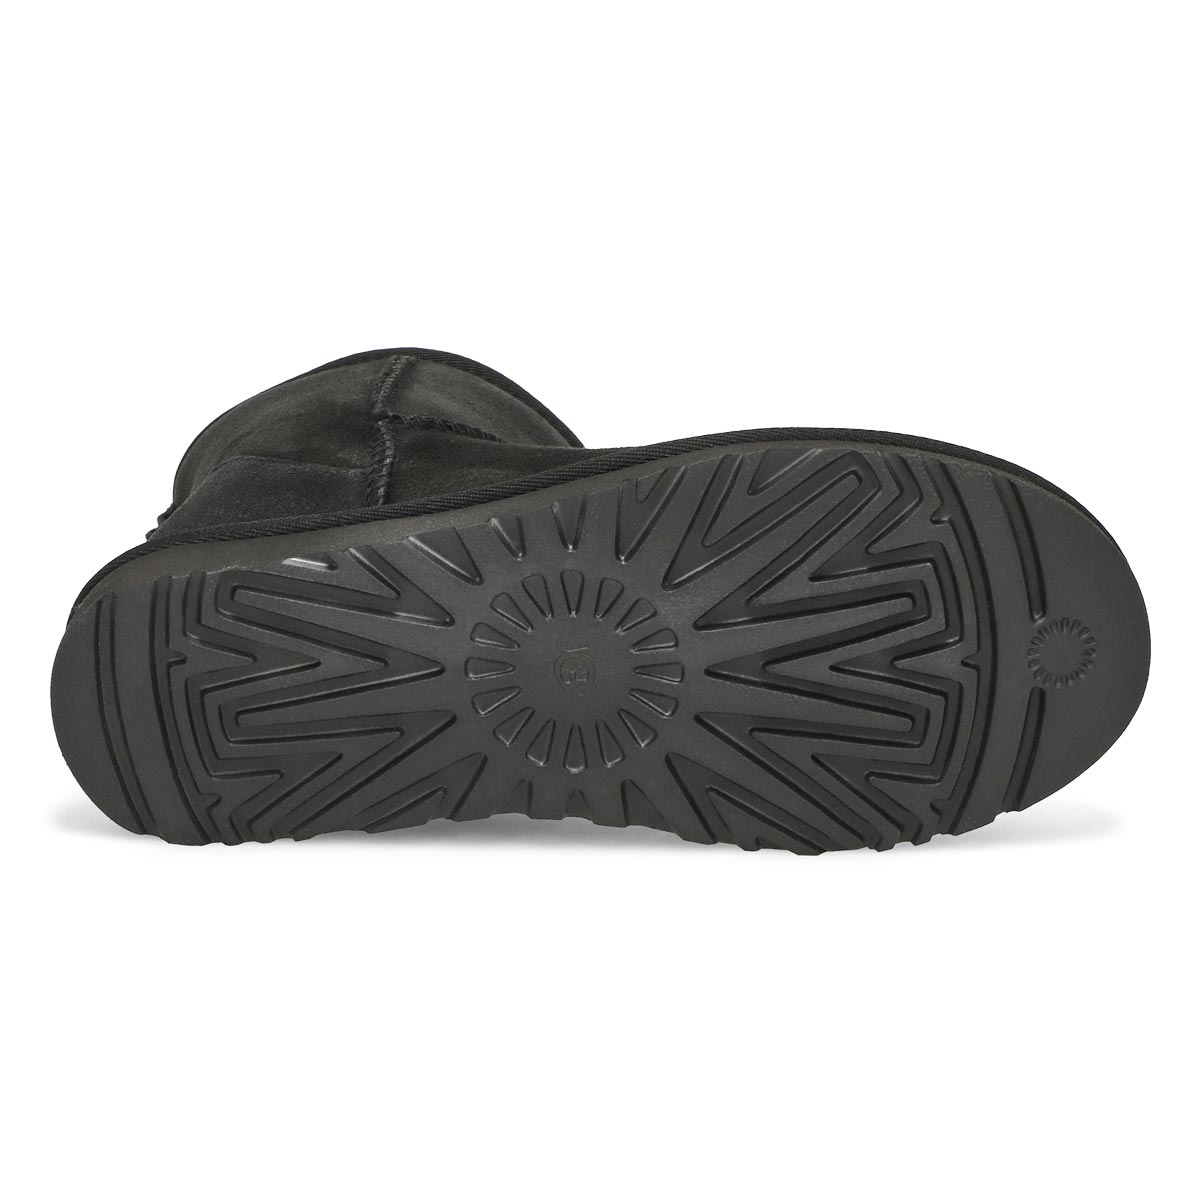 Lds Classic Mini II black boot